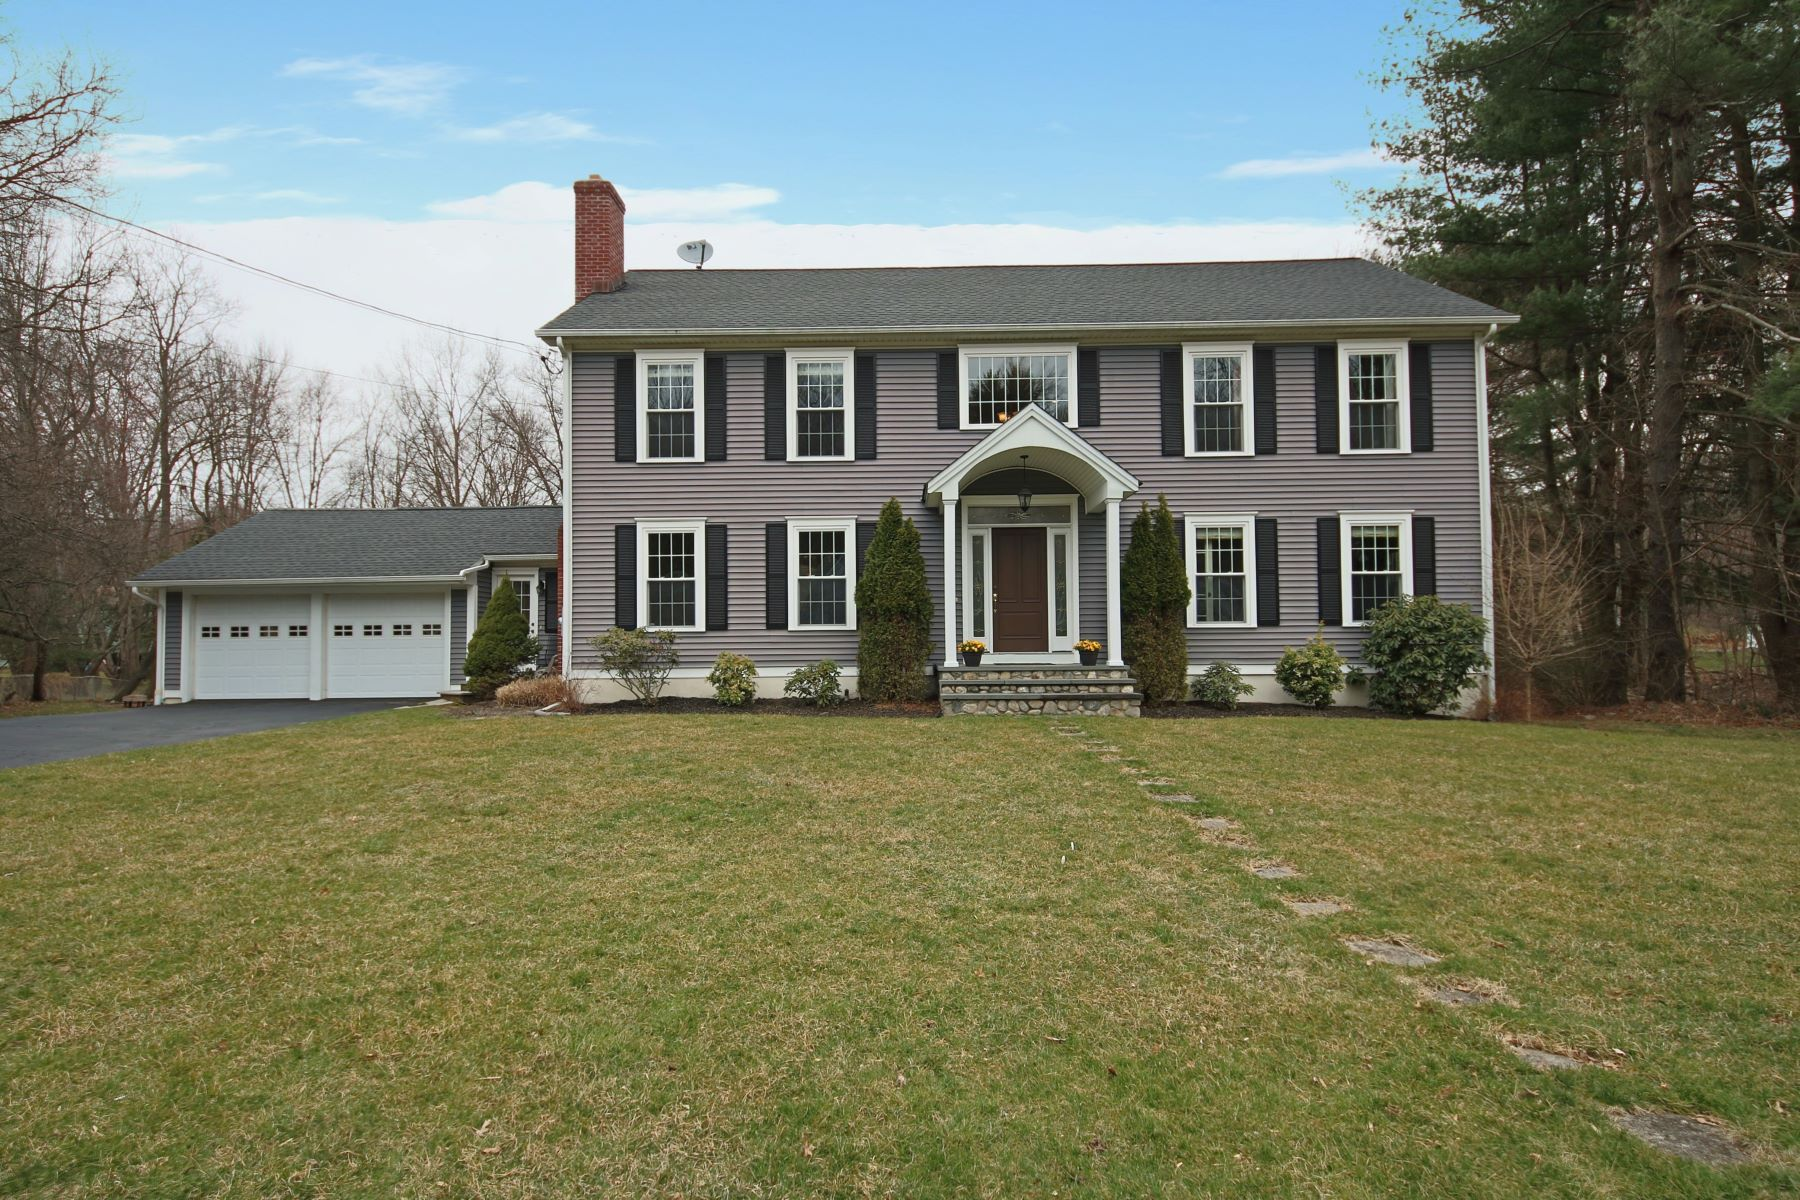 Single Family Homes for Sale at Newer Colonial on Level Lot 68 Tait Road Trumbull, Connecticut 06611 United States